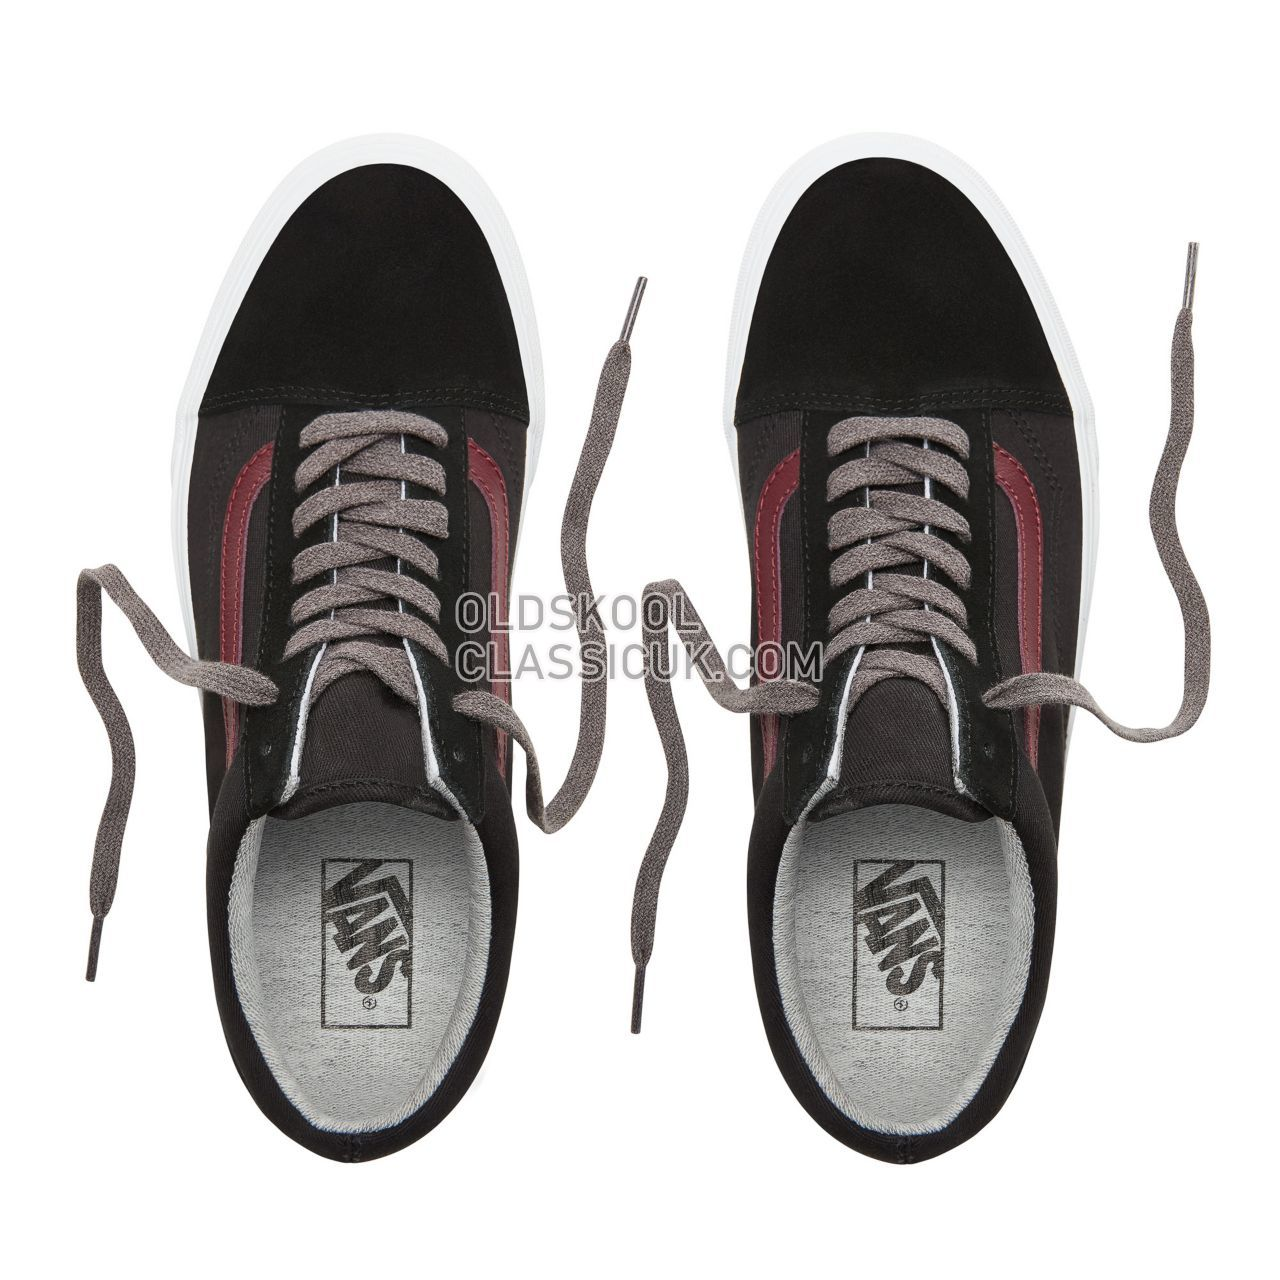 Vans Jersey Lace Old Skool Sneakers Mens Womens Unisex (Jersey Lace) Black/Port Royale VN0A38G1UNI Shoes